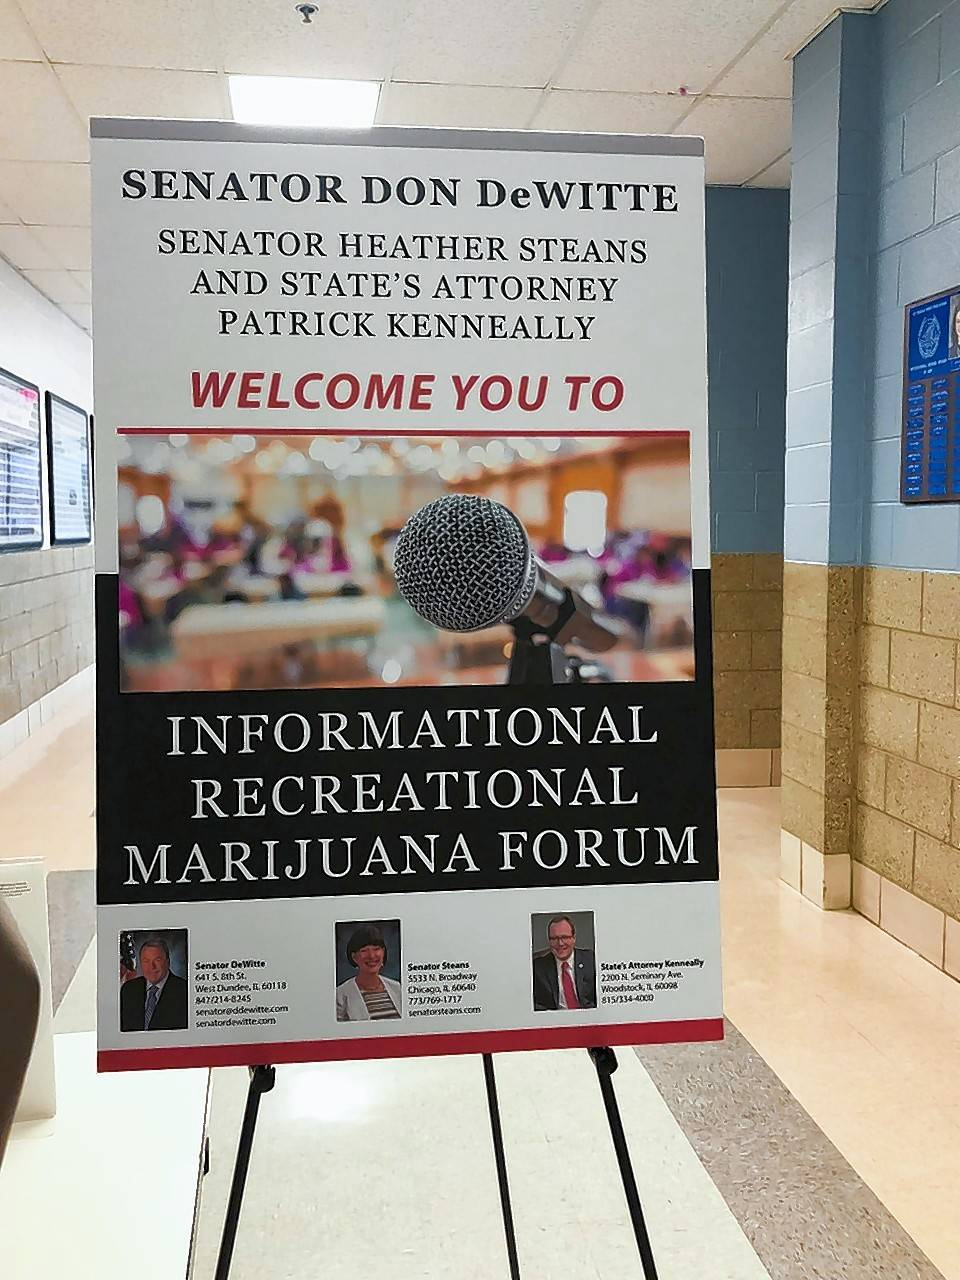 State Sen. Don DeWitte's public forum on legalizing recreational marijuana in St. Charles drew officials and law enforcement representatives from throughout the area. St. Charles Mayor Ray Rogina and Batavia Mayor Jeff Schielke both attended.